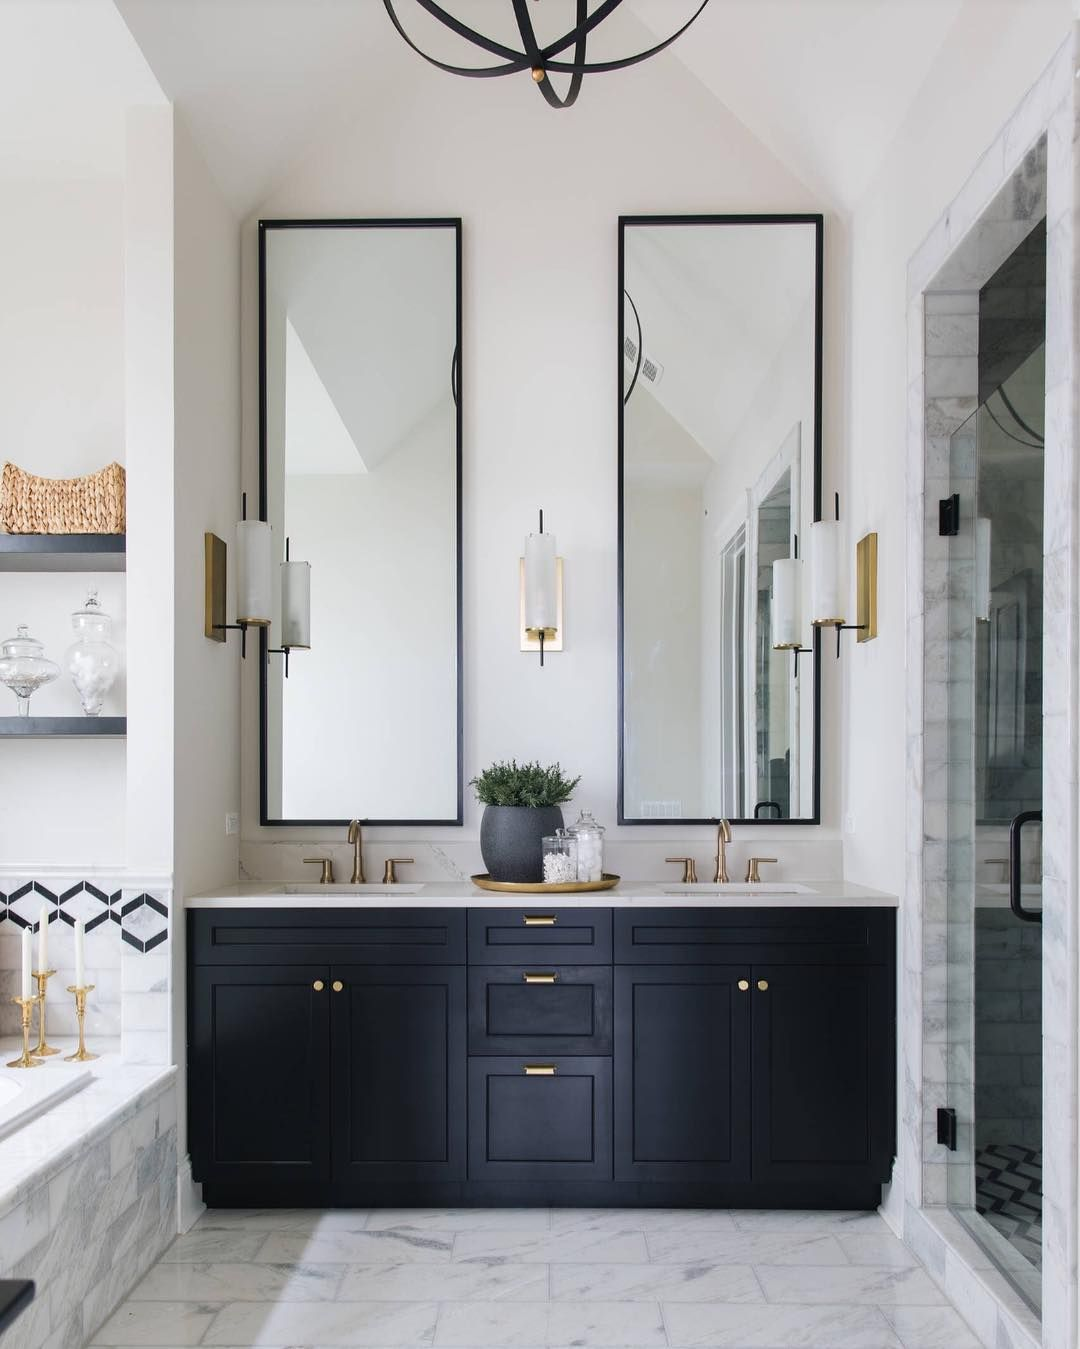 Coastal Interiors With Anneke On Instagram Well Hello There Statement Mirrors This Is A Great Ex Painted Vanity Bathroom Bathroom Design Bathroom Interior